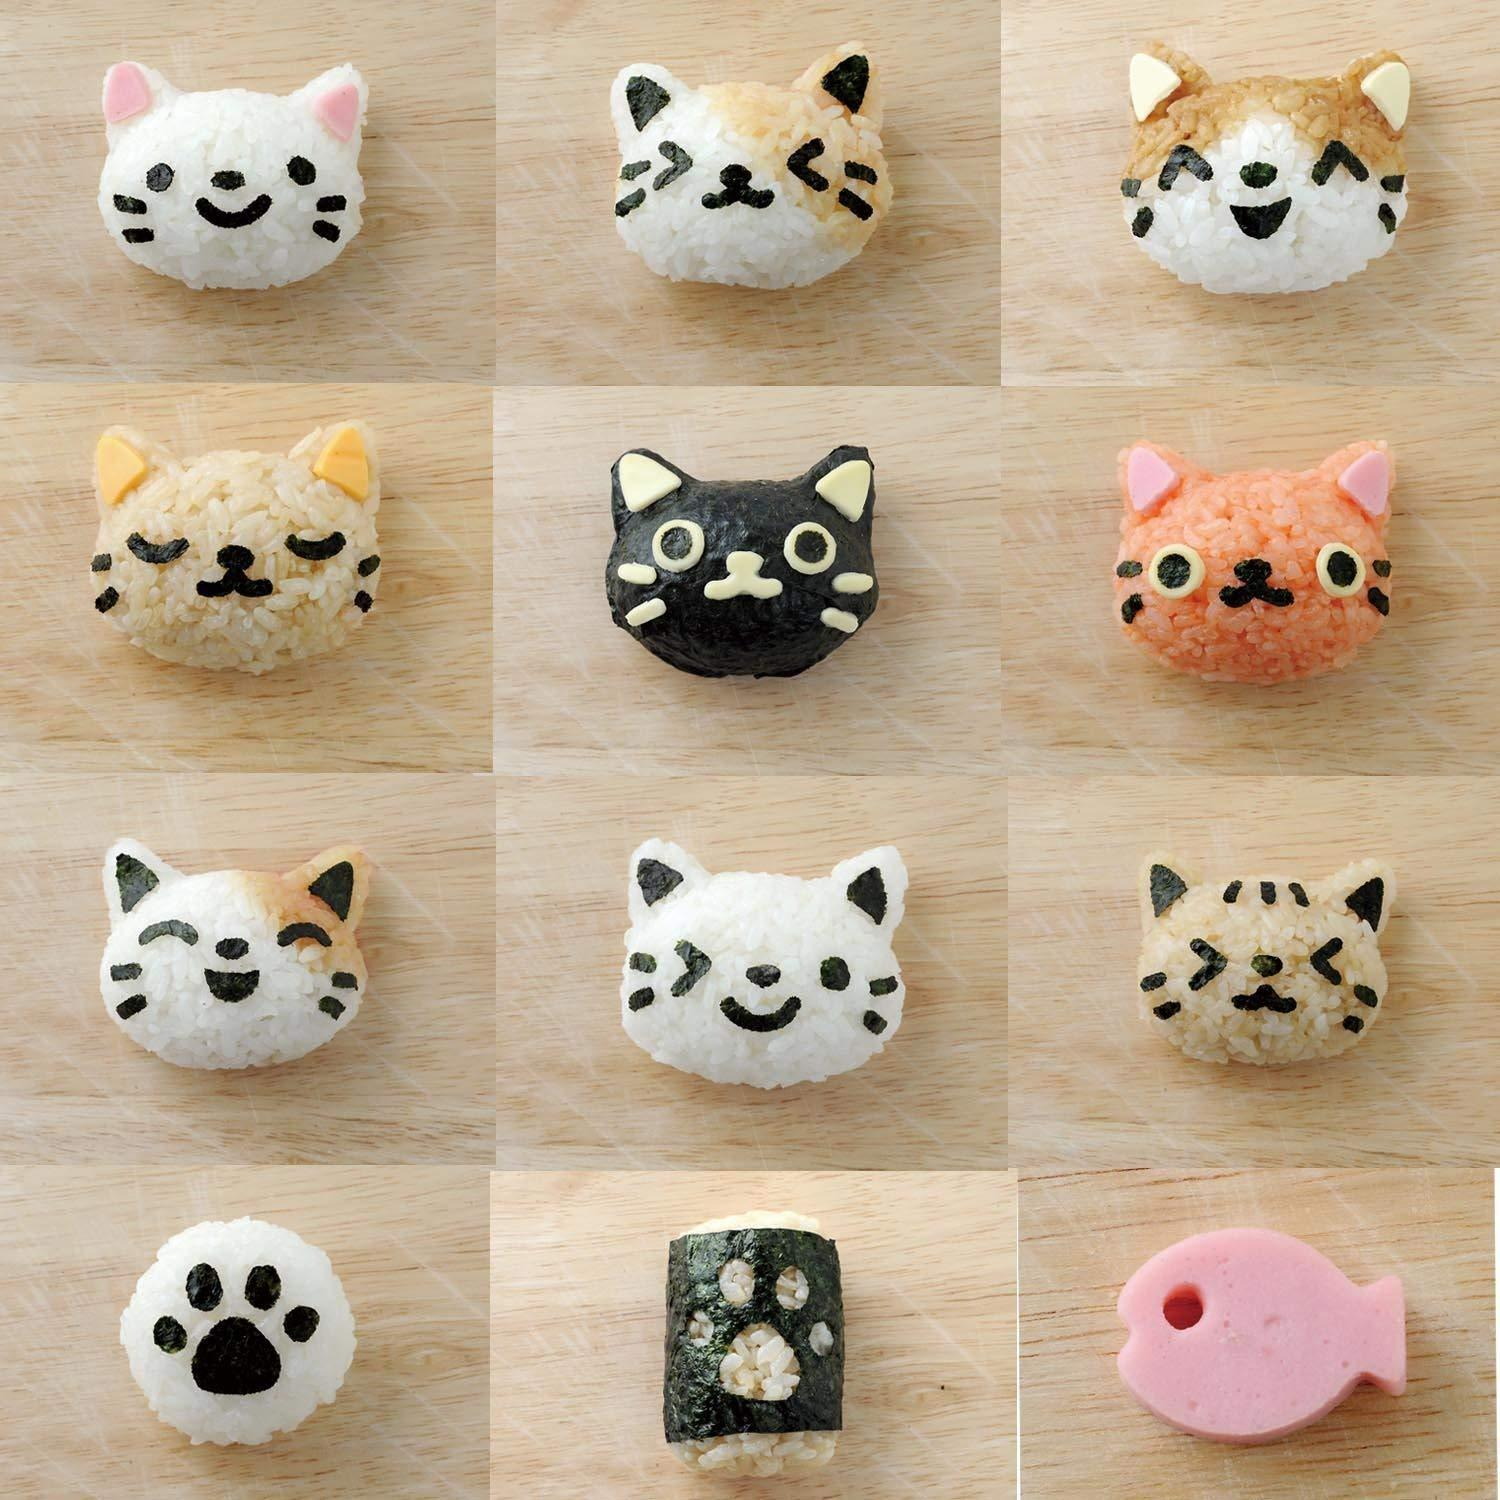 Neko Kao Onigiri Set by Arnest - Bento&co Japanese Bento Lunch Boxes and Kitchenware Specialists